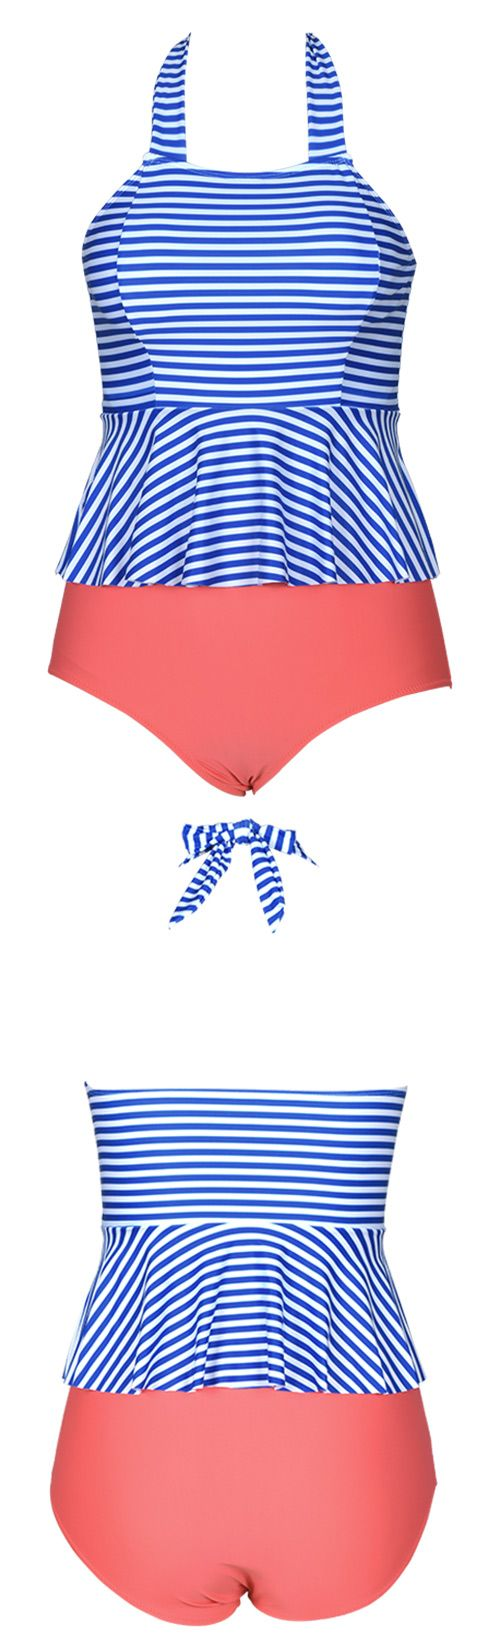 Simply fun and simply stylish, this Bikini comes in an array of colors to help you mix and match with any accessories. High-waisted fit gives you comfy experience. Try this halter bathing suit at Cupshe.com